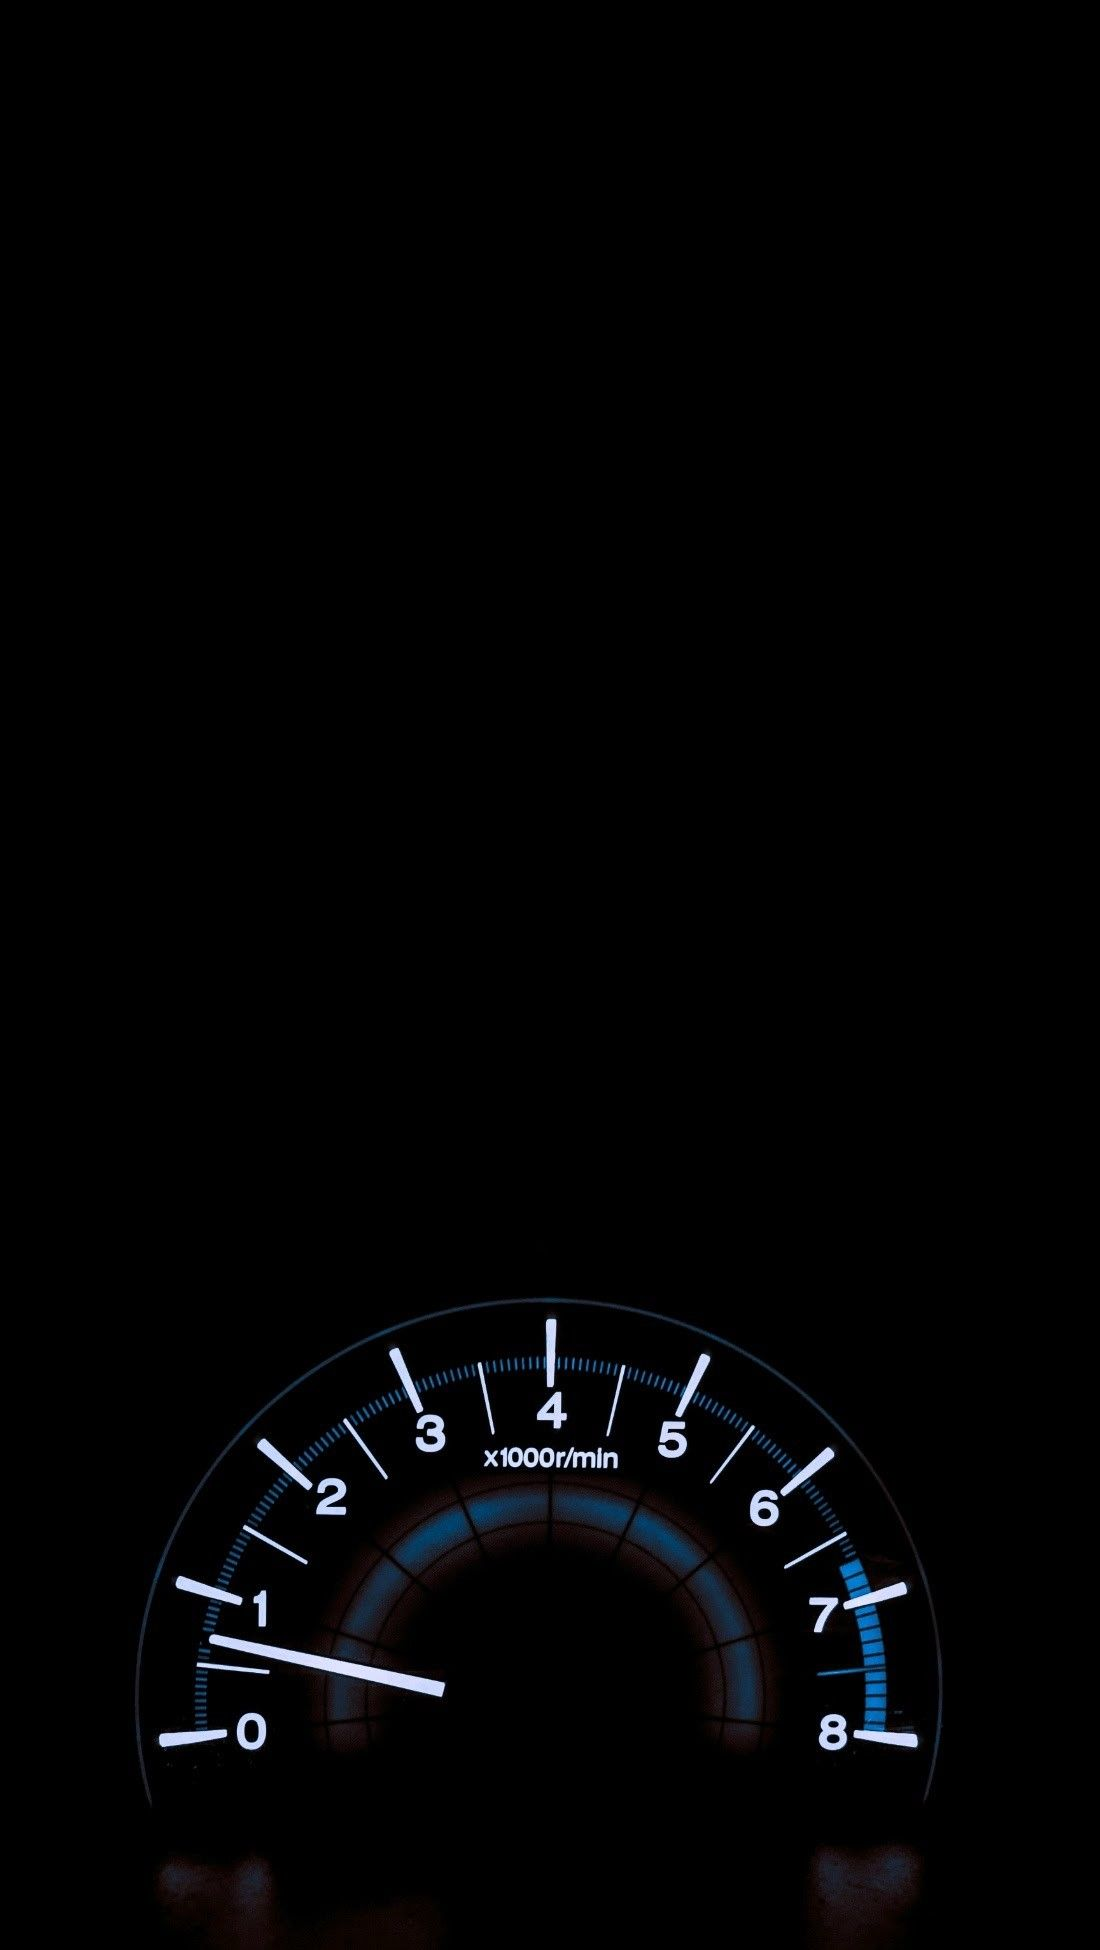 RPM Gauge iPhone Wallpaper